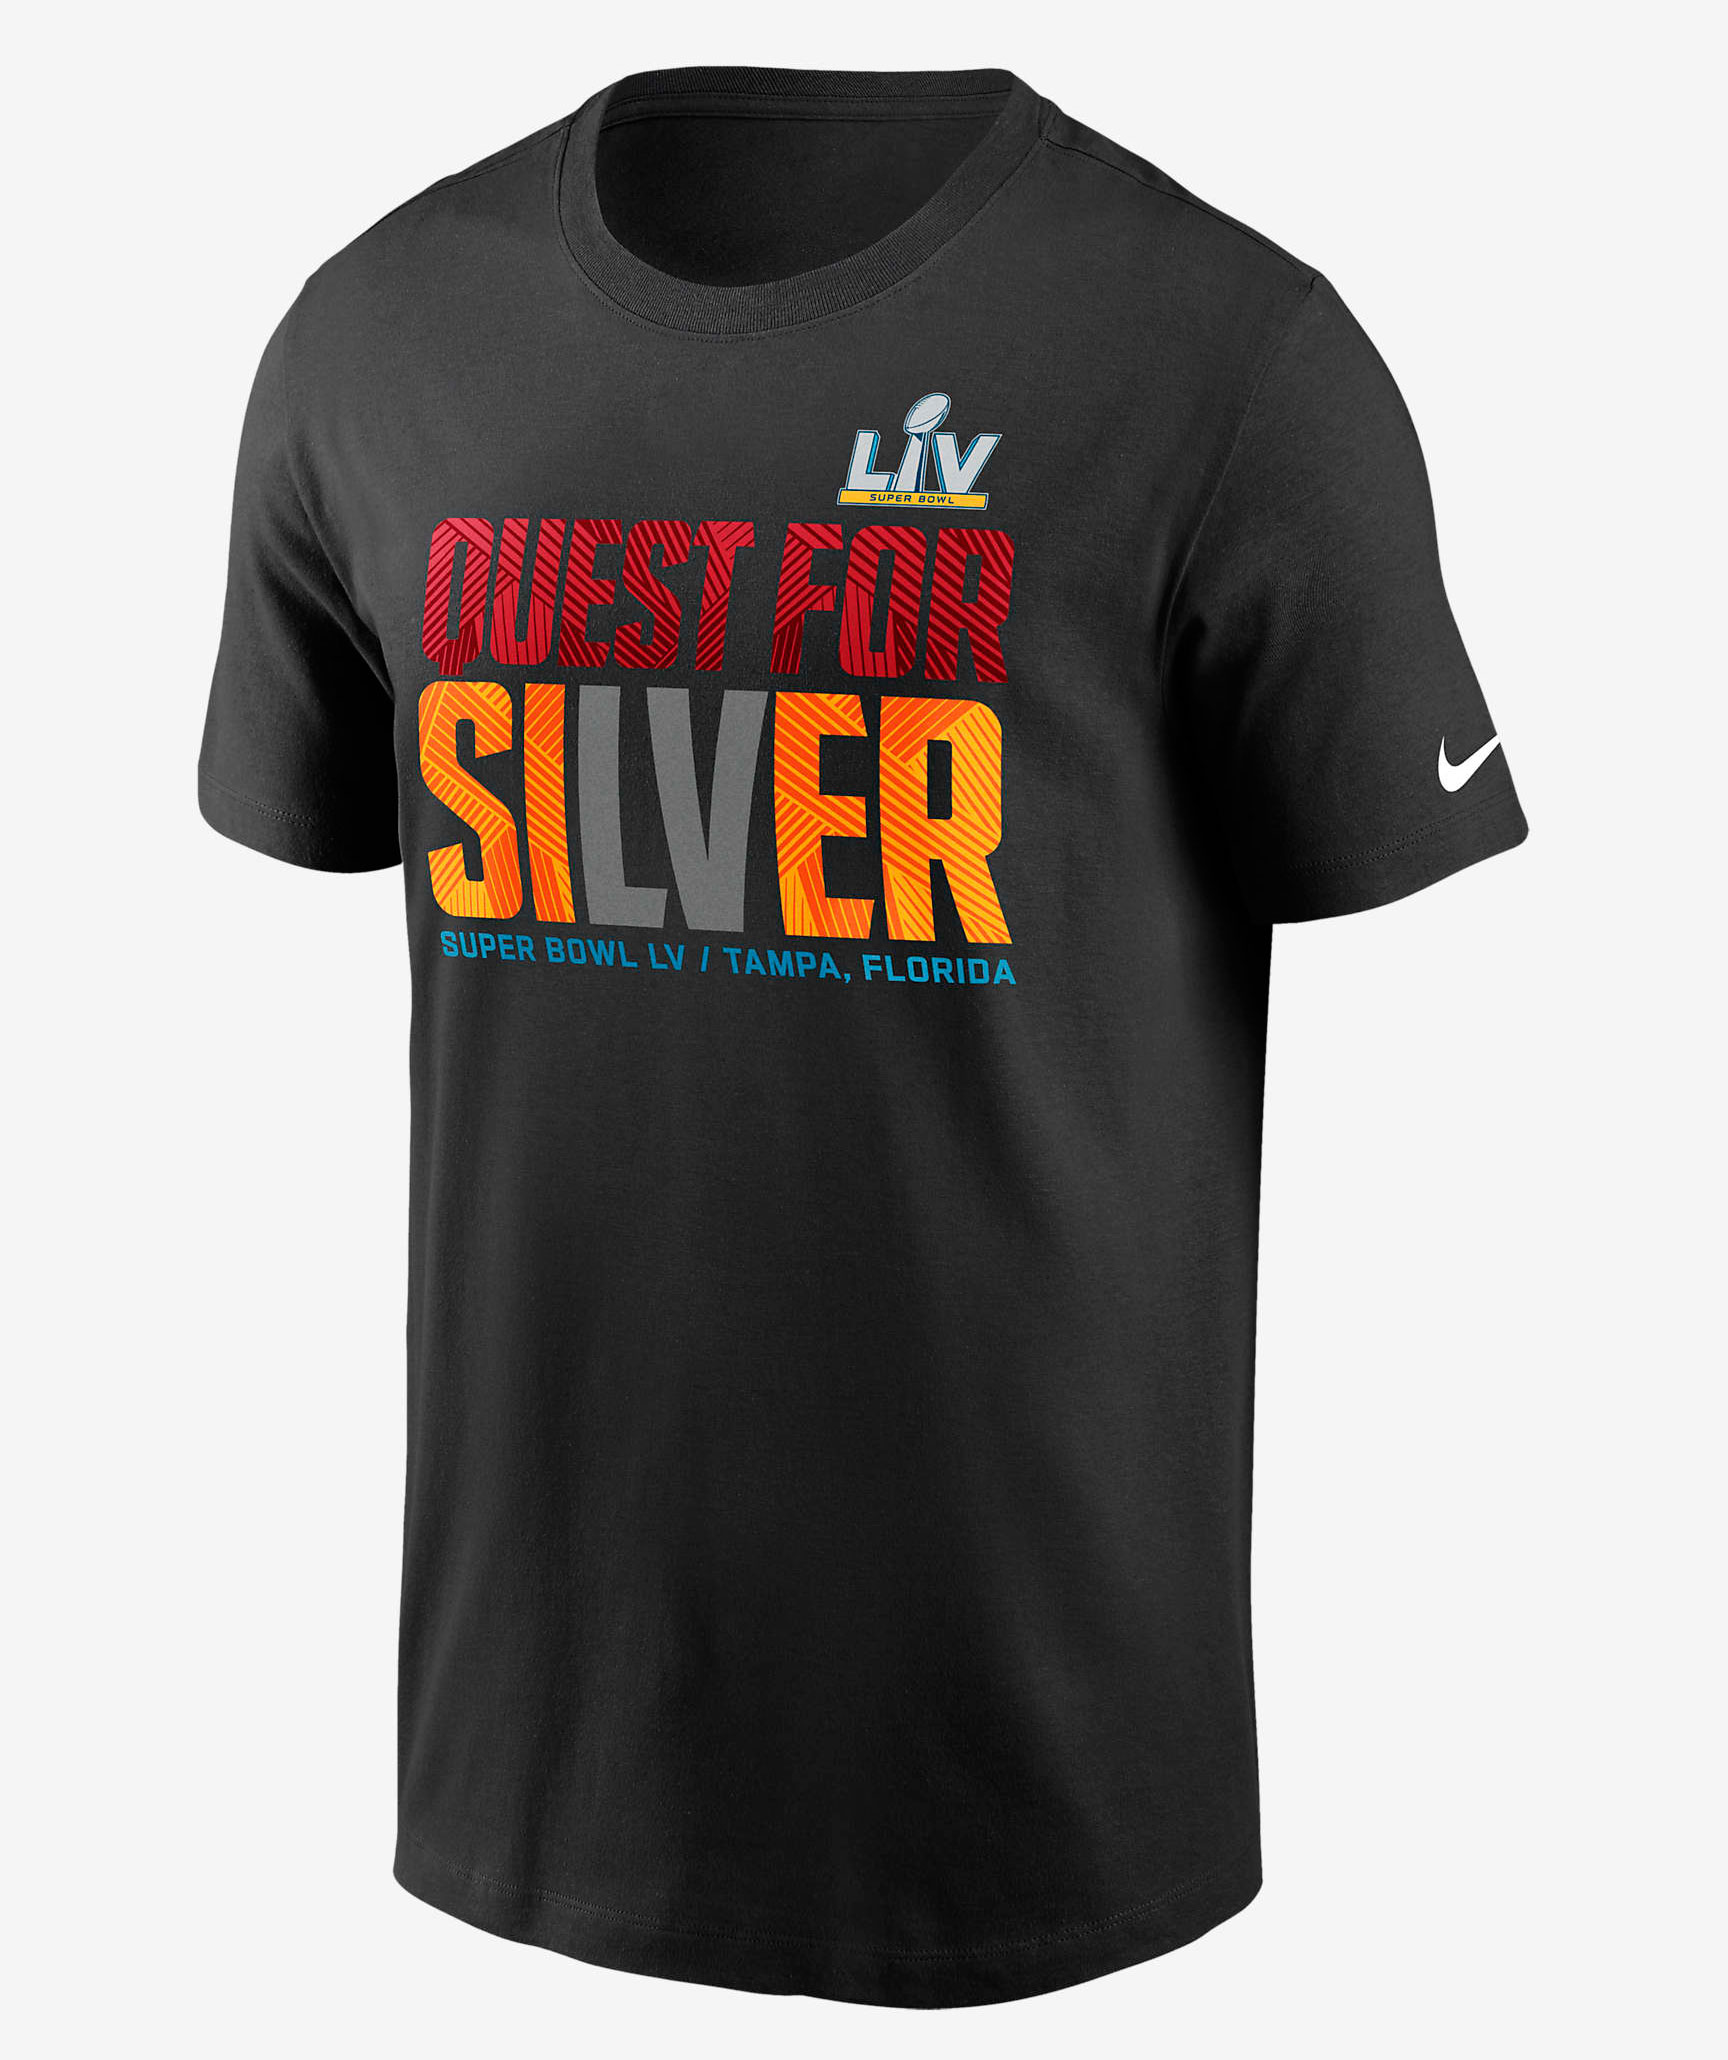 super-bowl-lv-nike-quest-for-silver-shirt